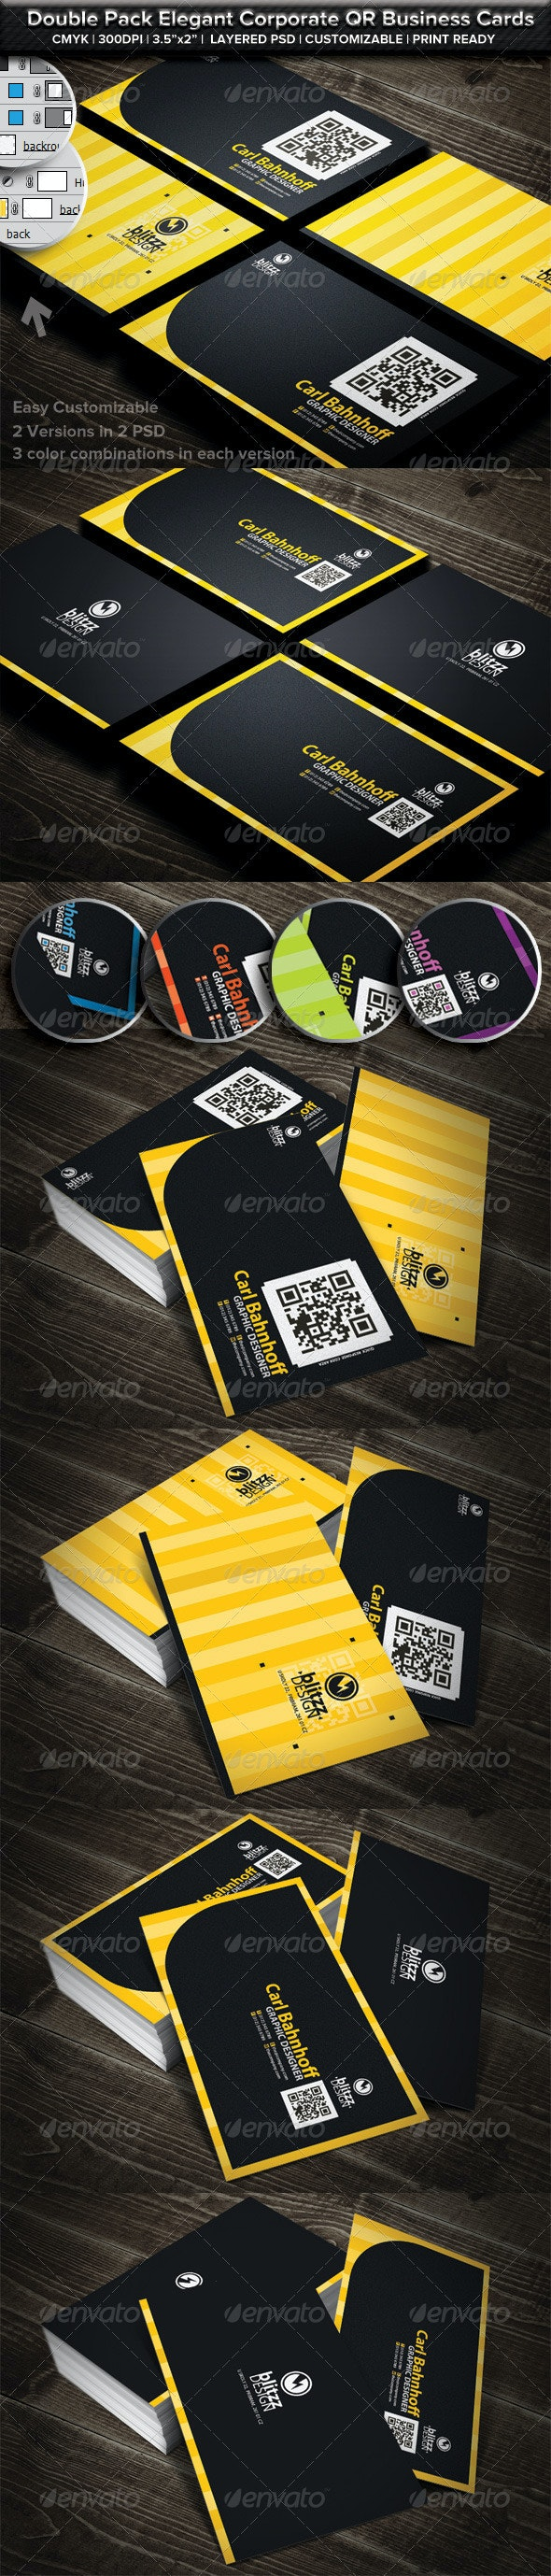 Double Pack Corporate QR  Business Cards - Business Cards Print Templates